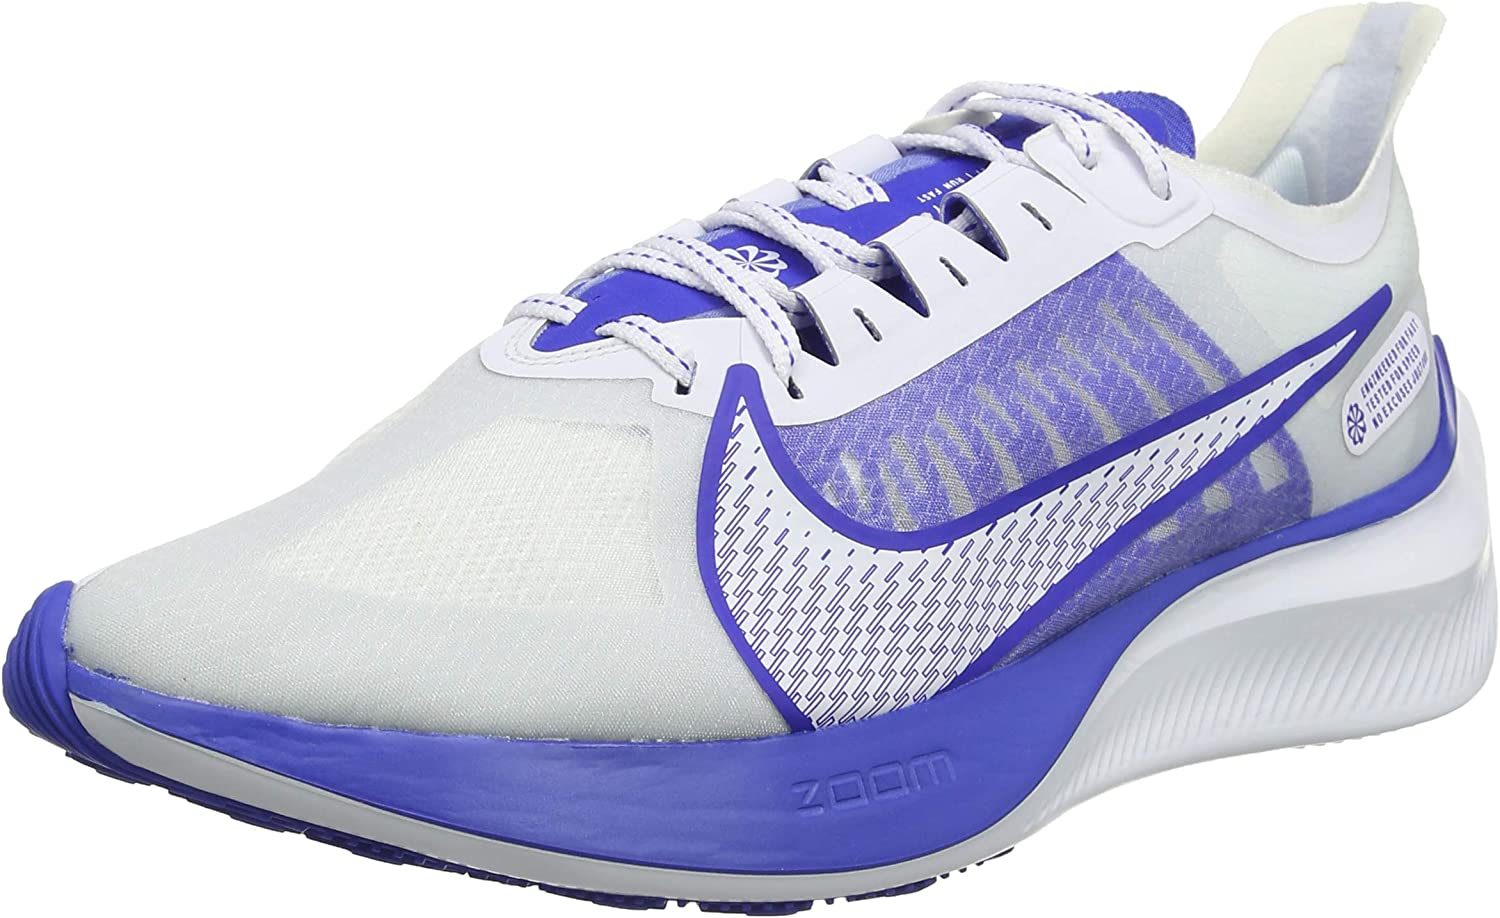 Nike Zoom Gravity Mens Bq3202-100